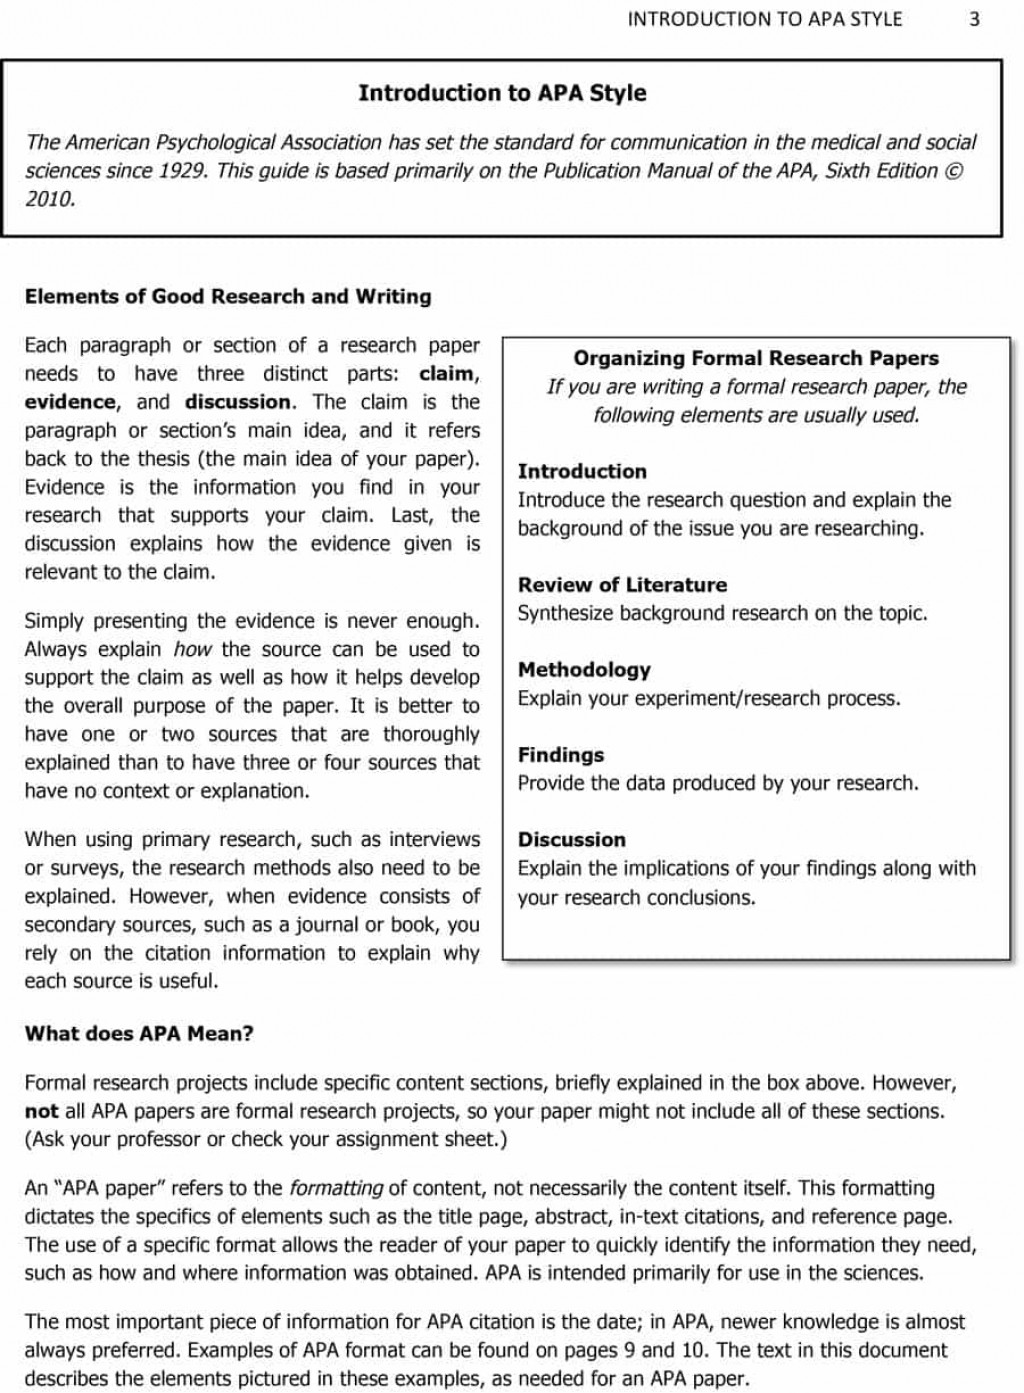 021 Introduction Of Research Paper Apa Psychology Papers Format Essay L Best A For Sample - Style Large